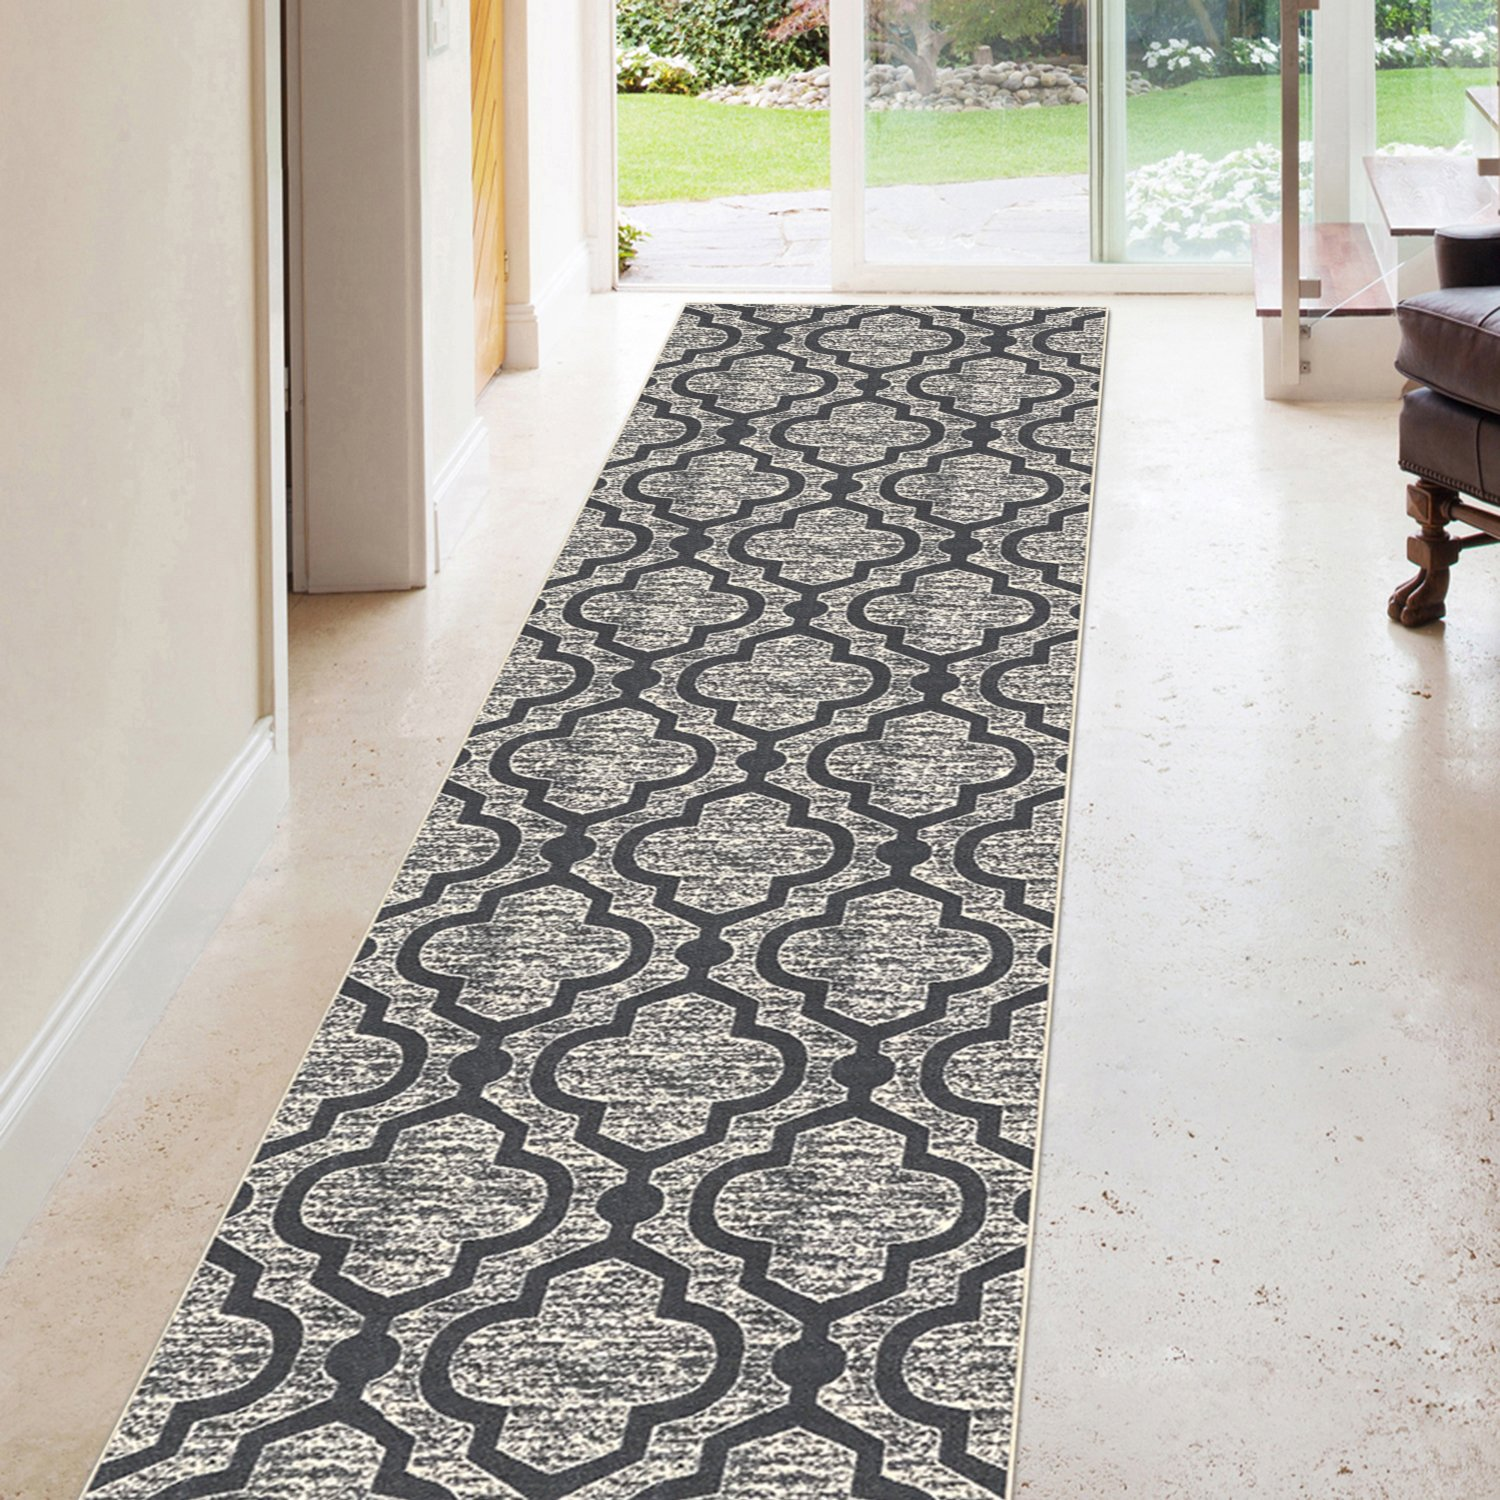 Kapaqua Rubber Backed 31-inch x 12-feet Long Runner Rug SILVER GREY Moroccan Trellis Non-Slip Kitchen Entryway Hallway 3x12